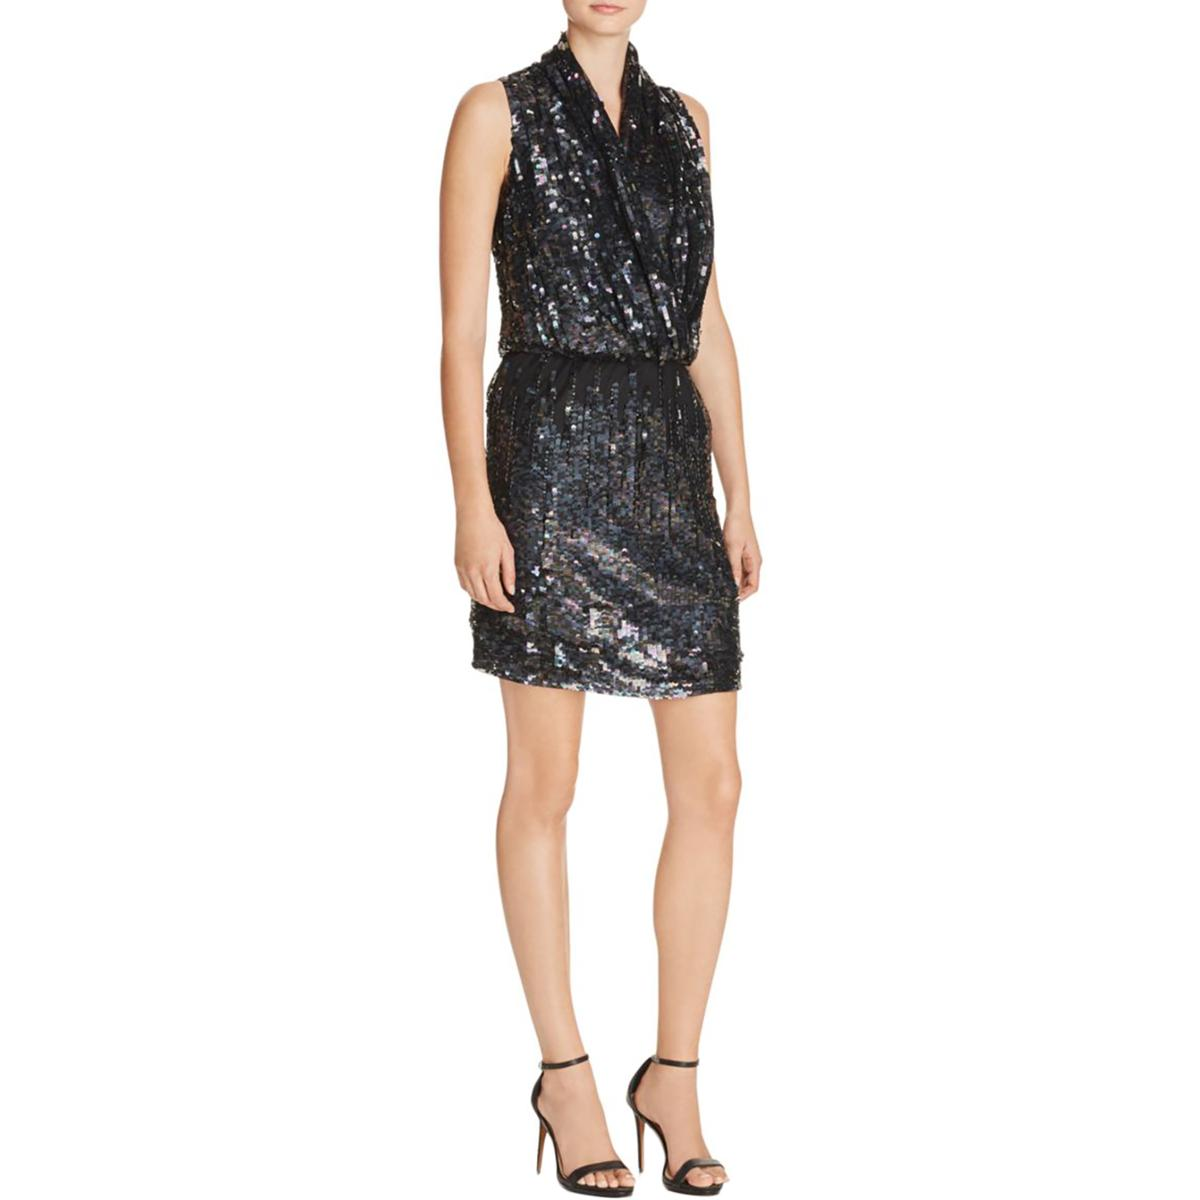 193a068b Details about Parker Womens Lysette Party Sequined Mini Cocktail Dress BHFO  0096